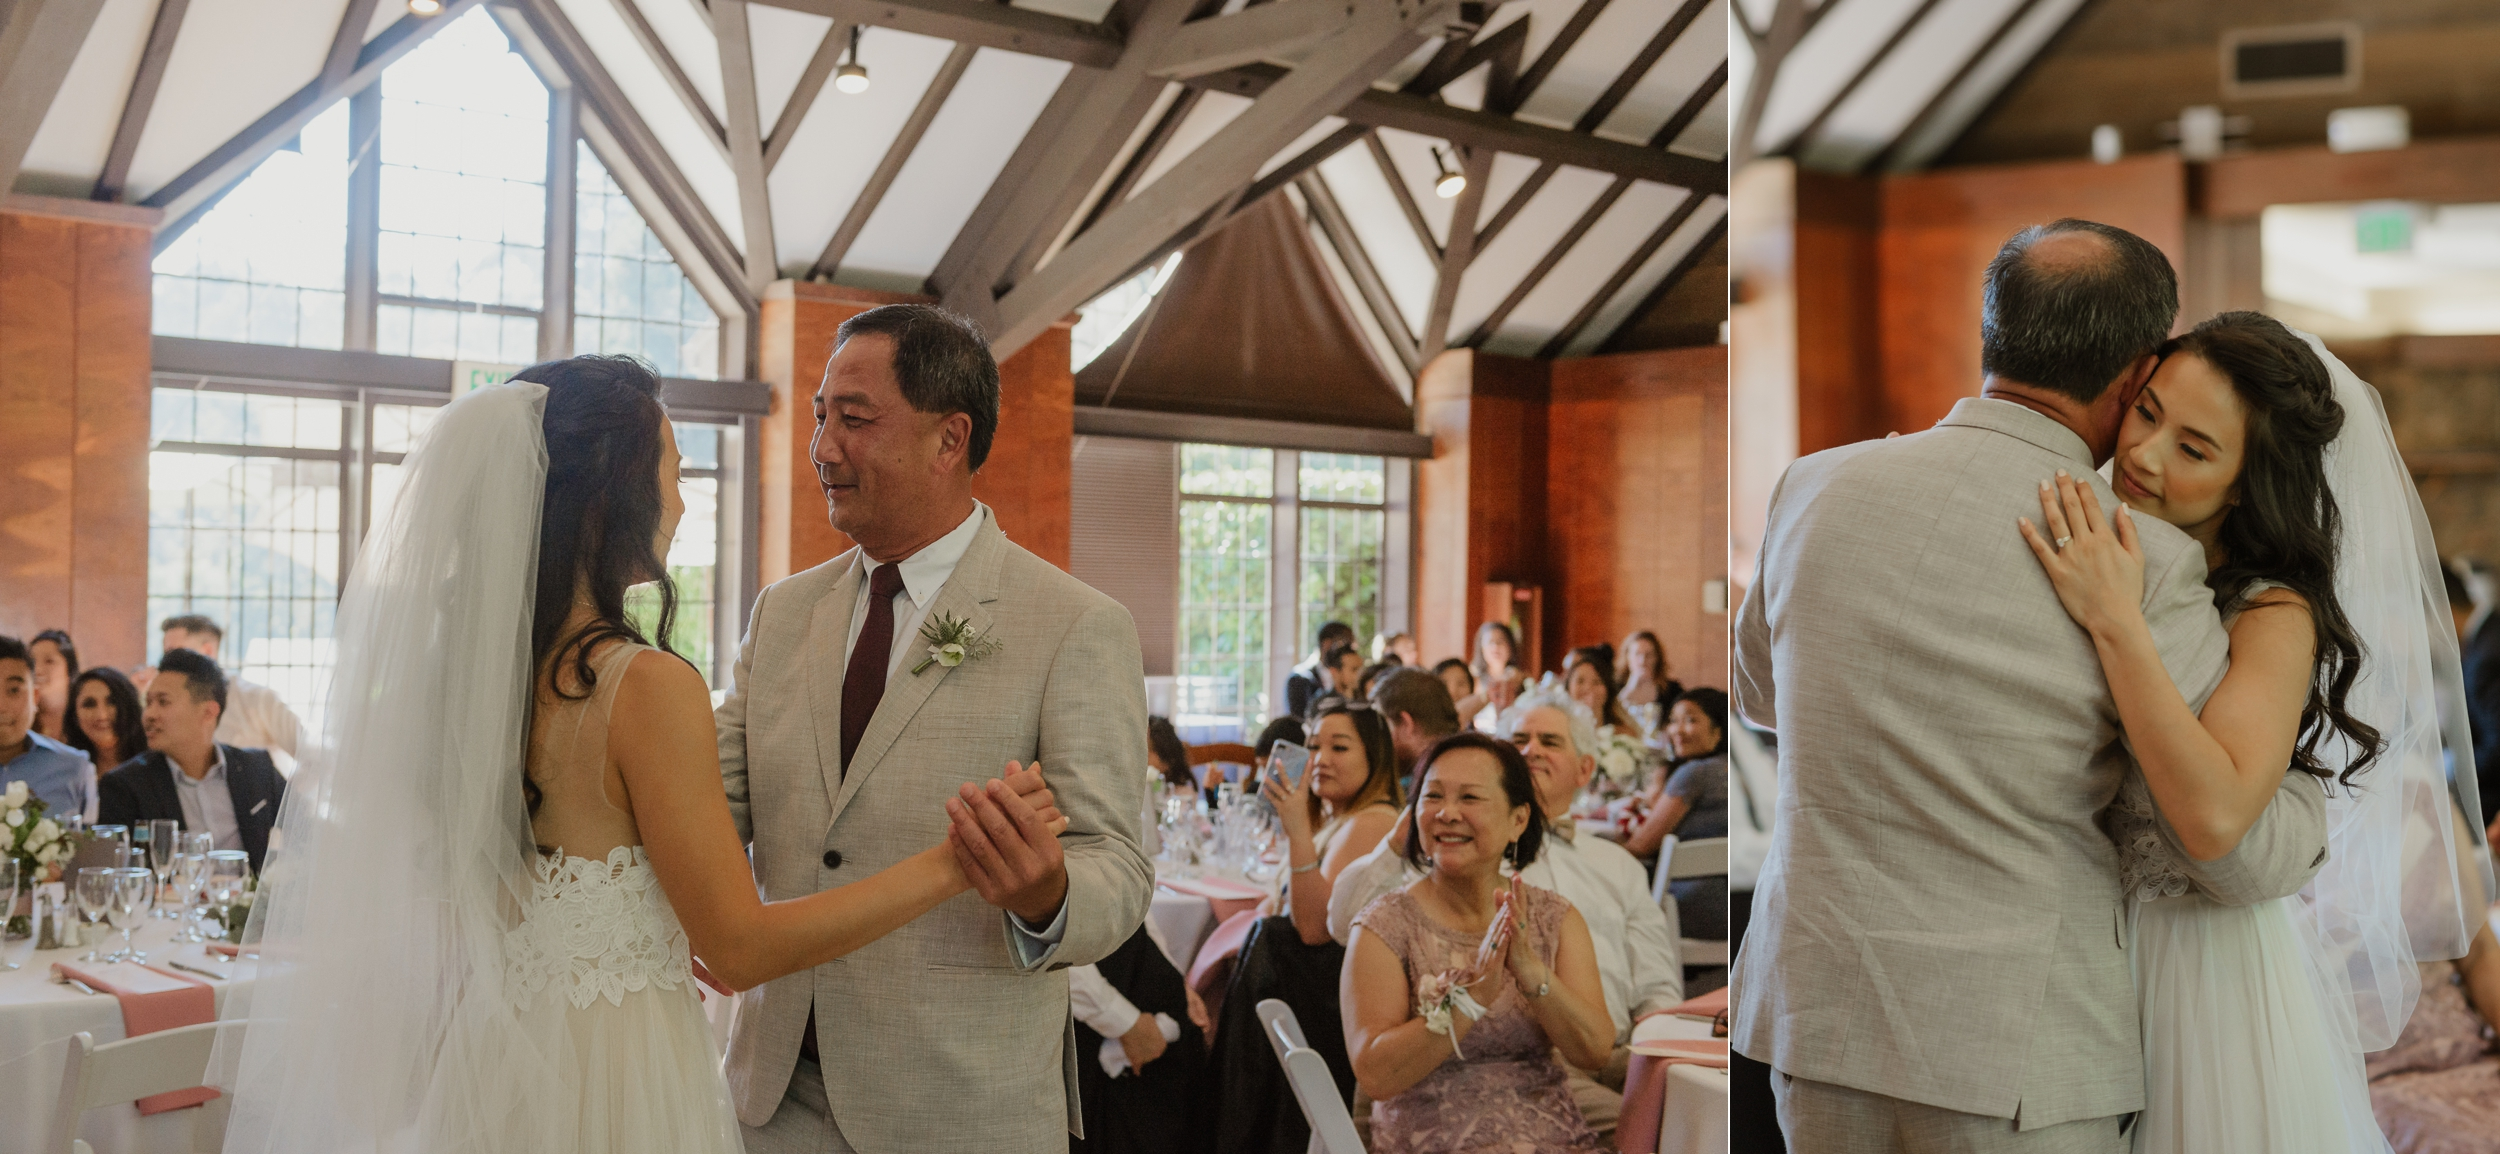 39-berkeley-tilden-park-brazilian-room-wedding-vivianchen-244_WEB.jpg